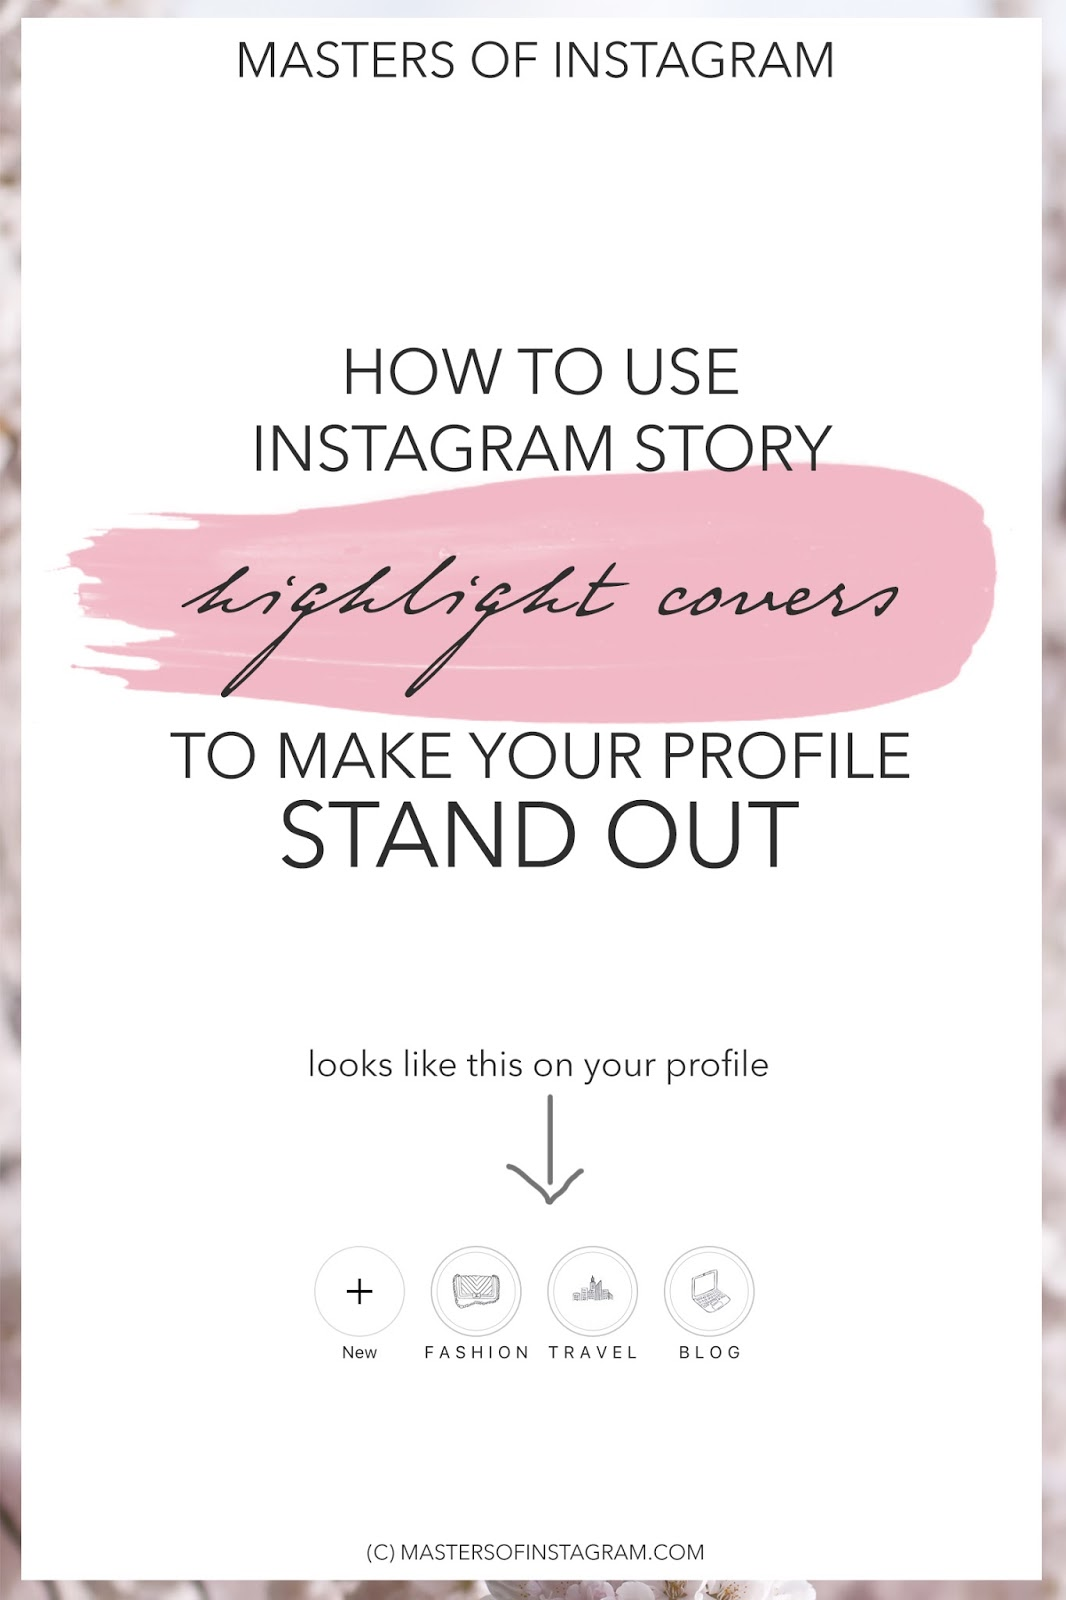 How to use Instagram Highlight Covers to make your profile stand out, Instagram Highlights, Instagram Stories, Instagram Story Covers